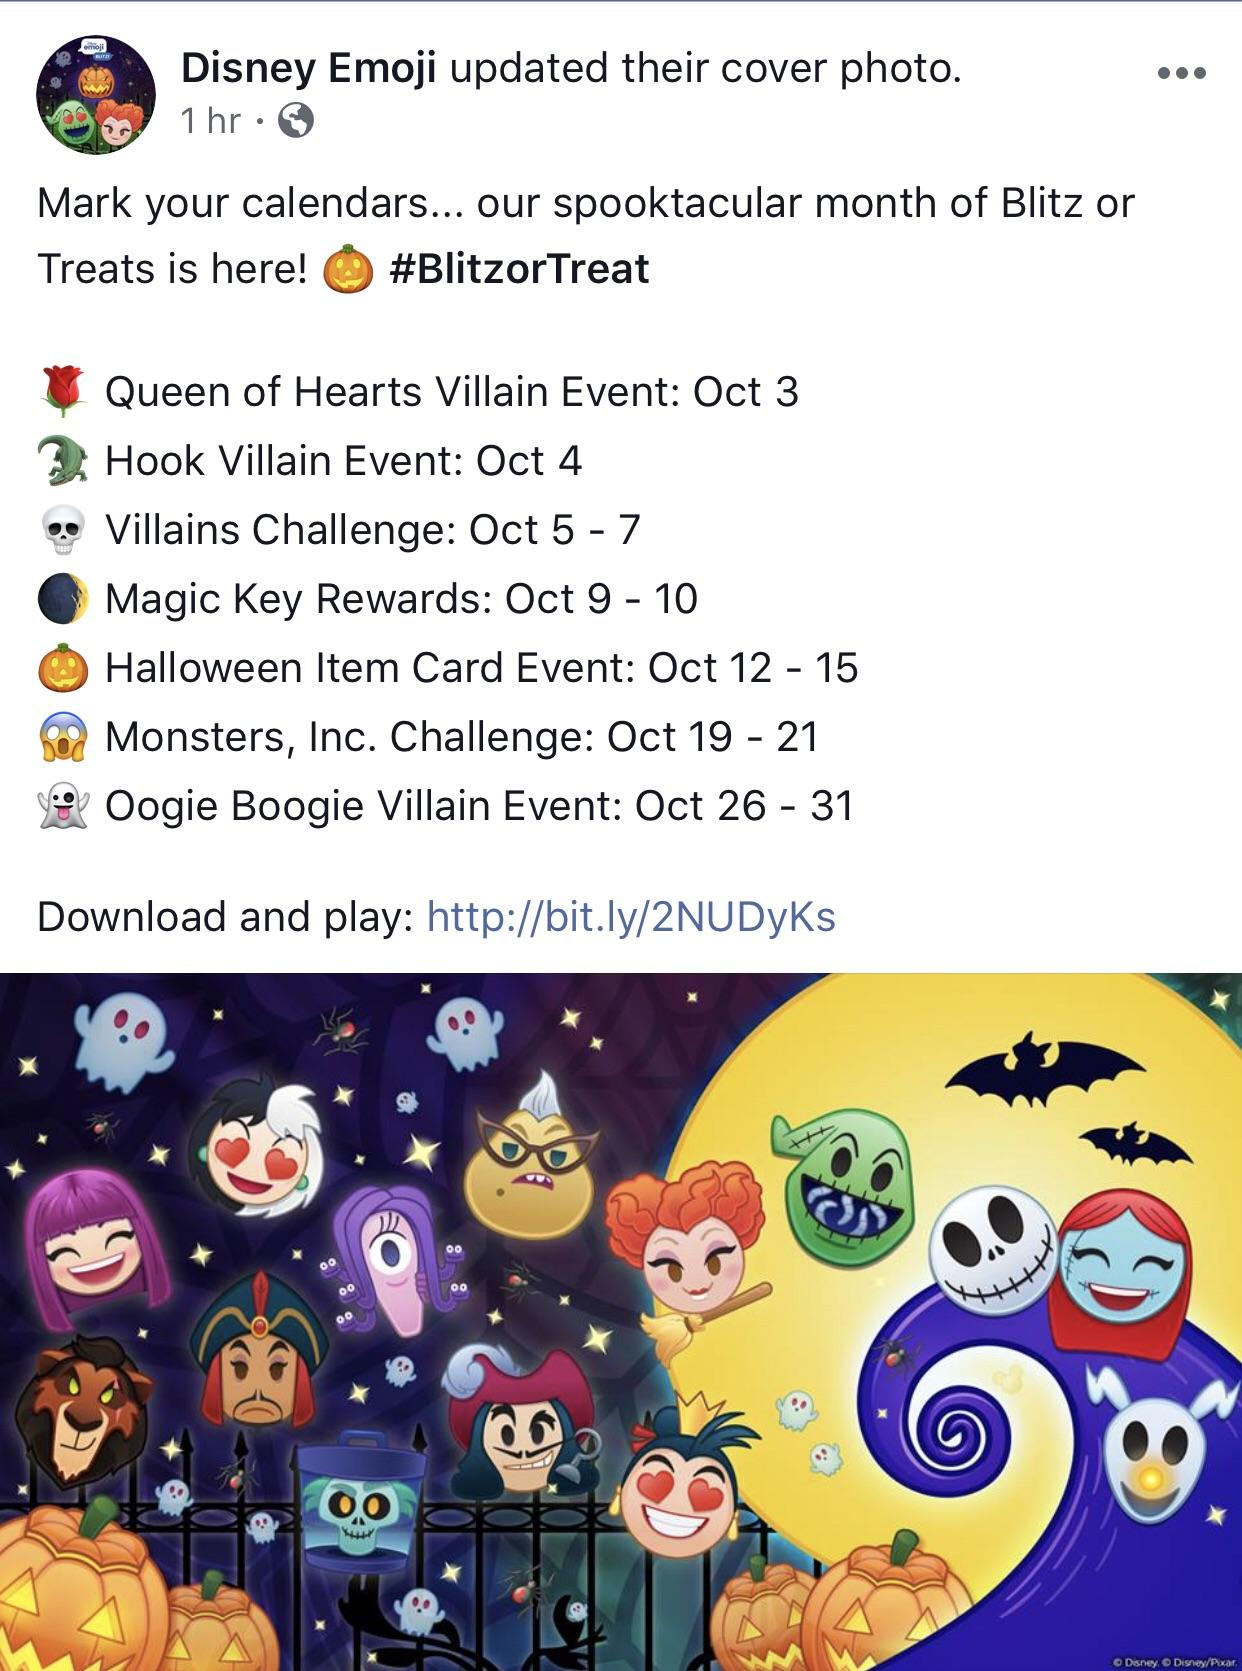 So Glad They're Giving Us The Rundown Every Month in Calendar Disney Emoji Blitz